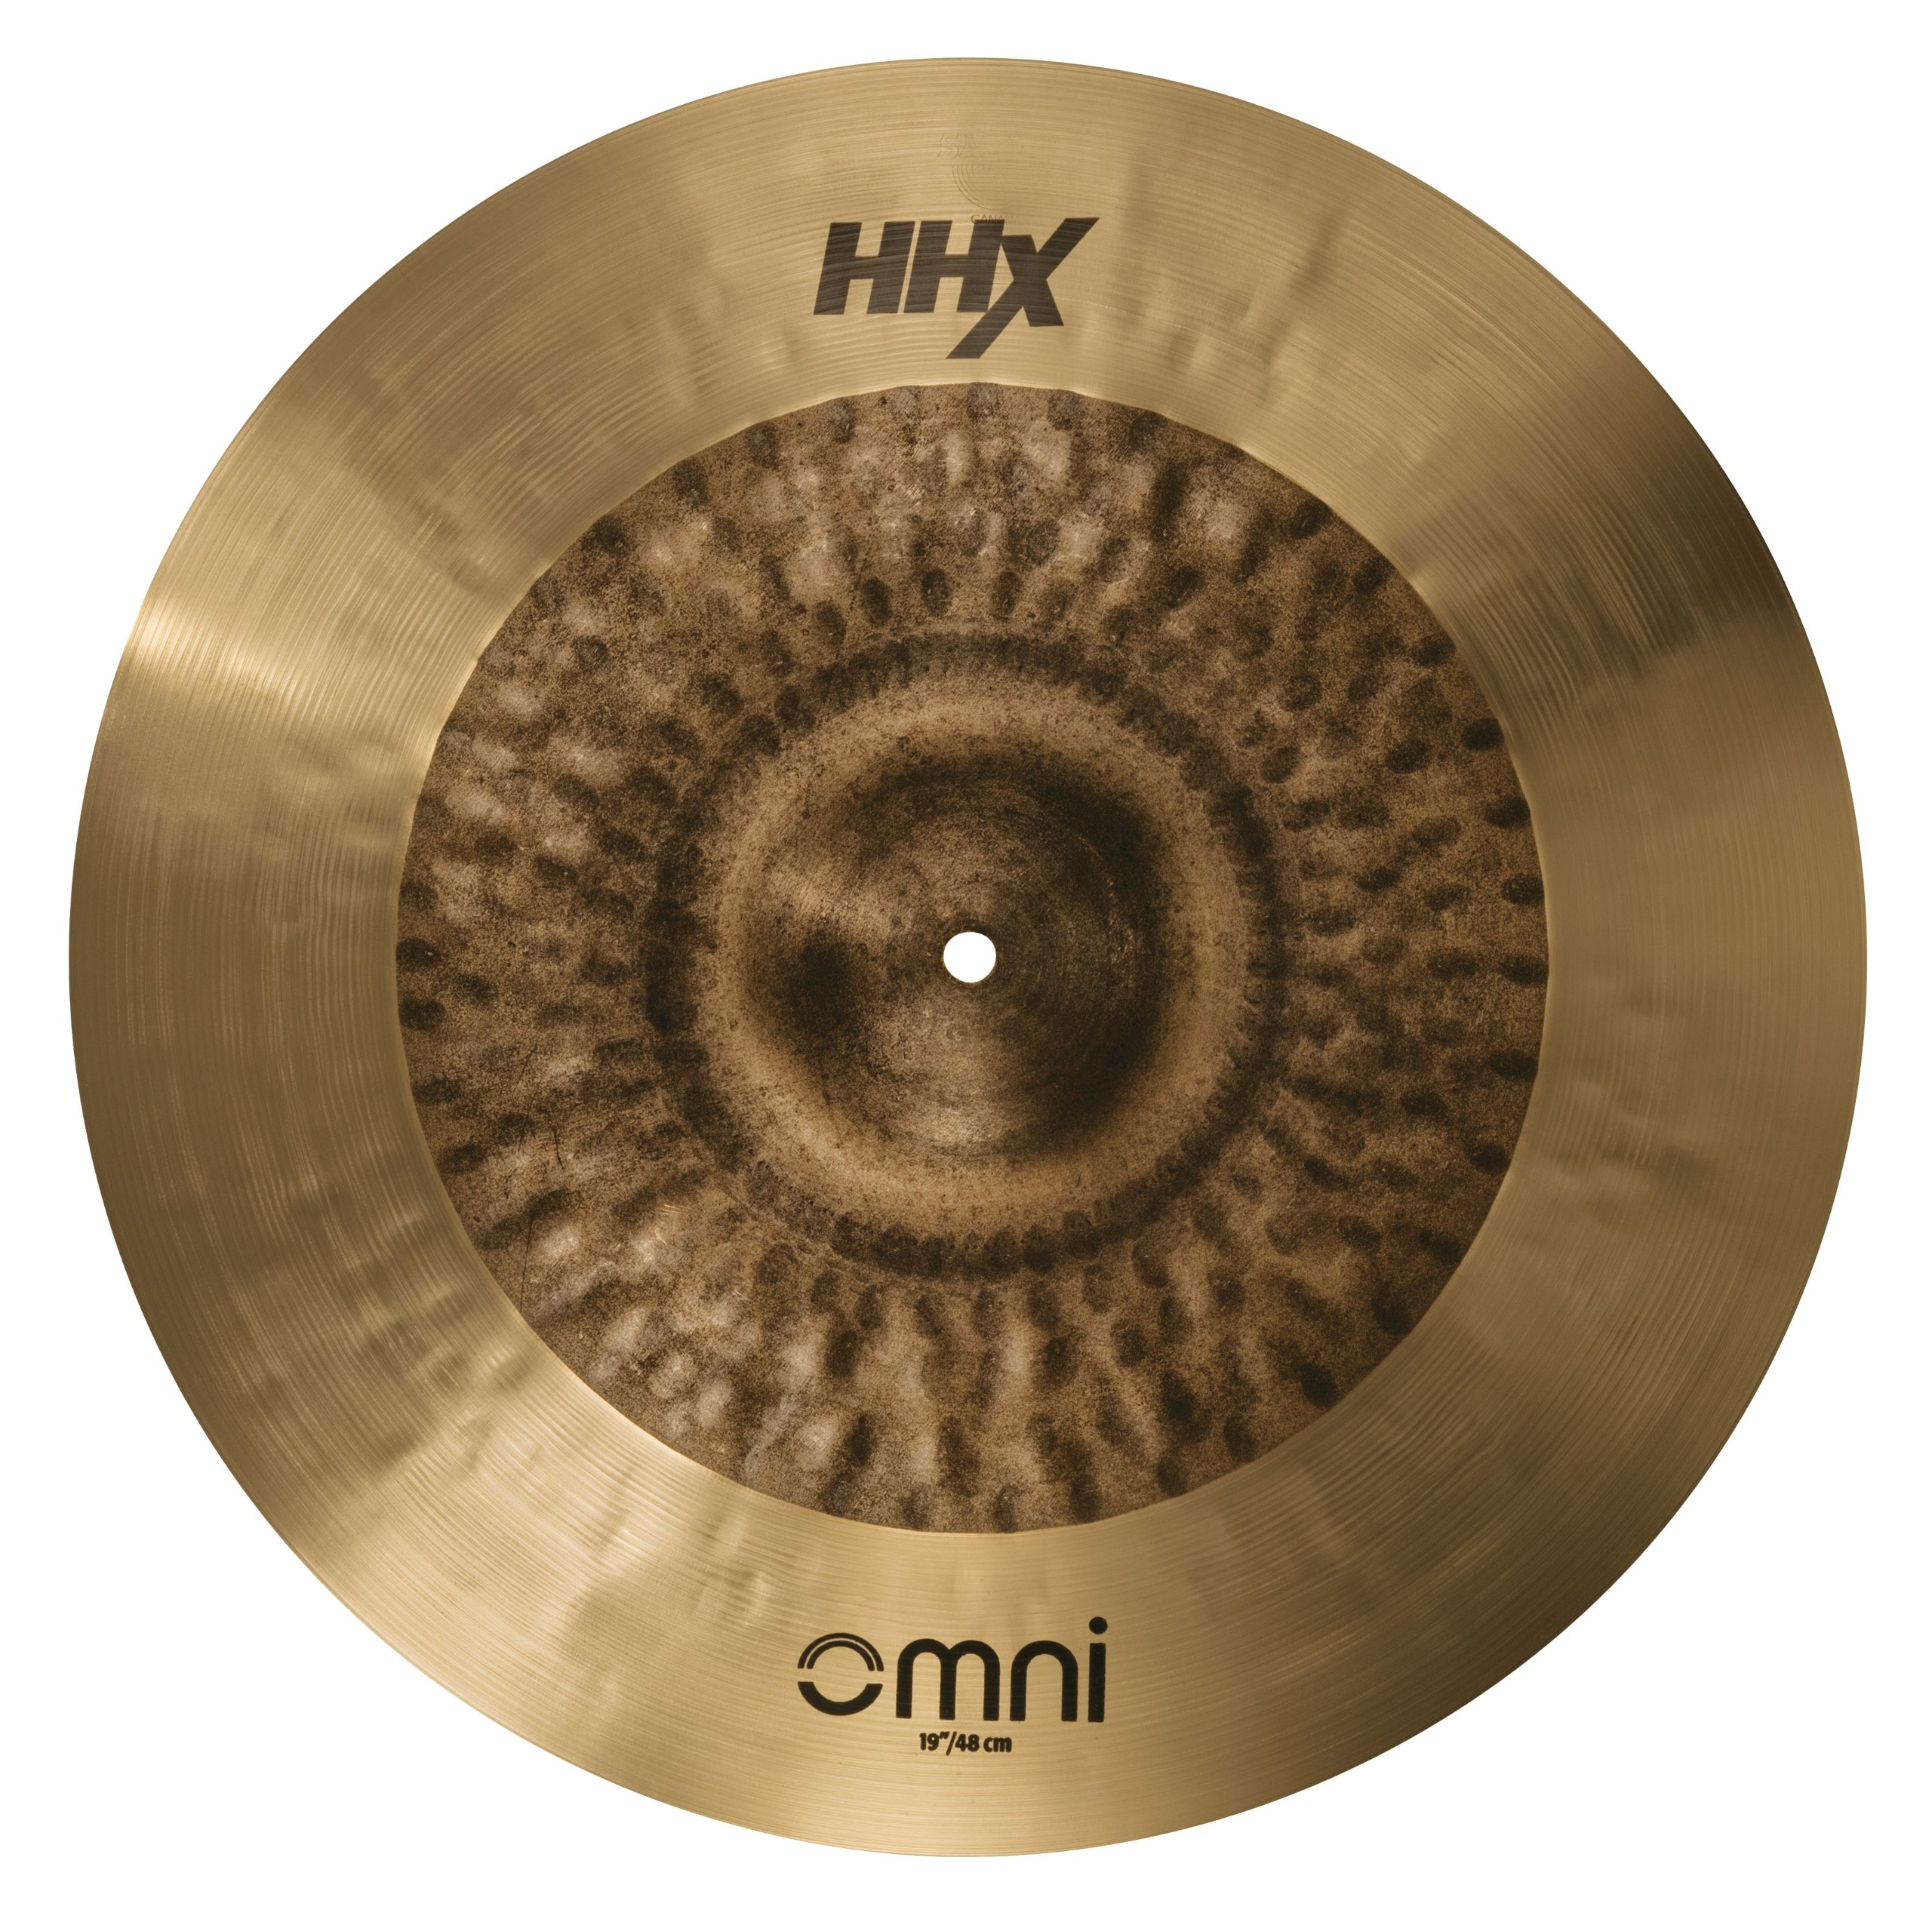 Sabian Cymbal Variety Package, inch (119OMX)